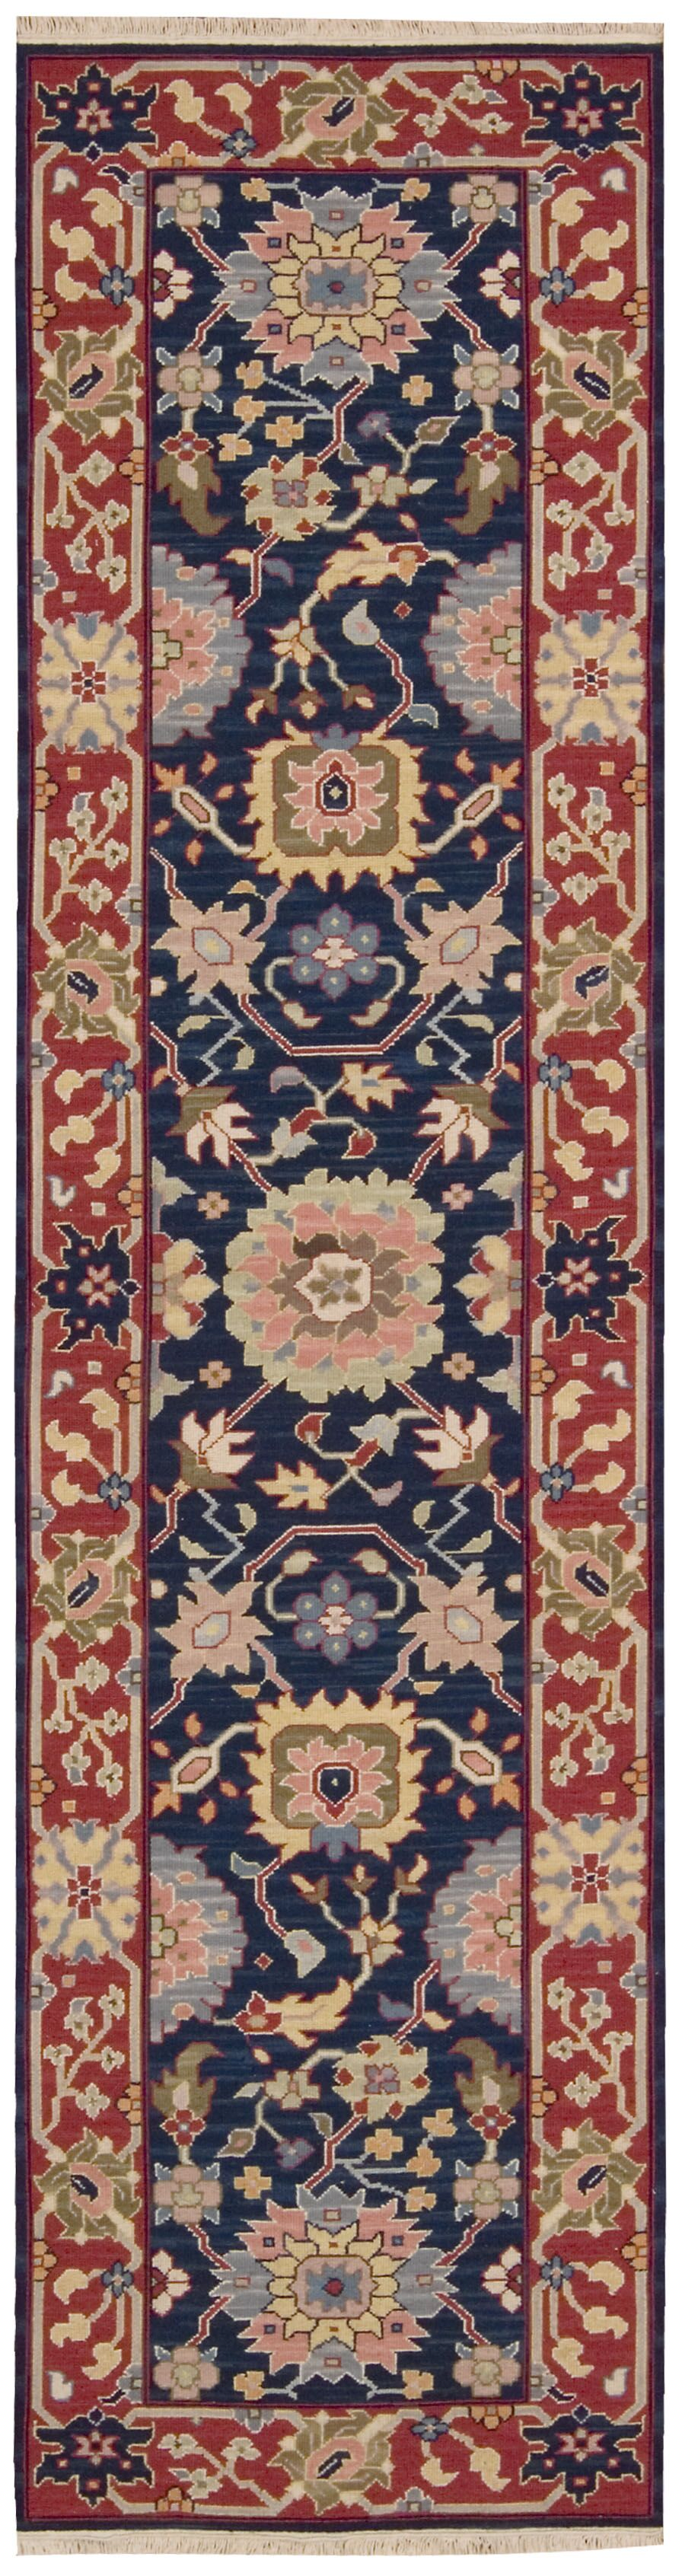 Pierson Hand-Woven Navy/Red Area Rug Rug Size: Rectangle 3'10